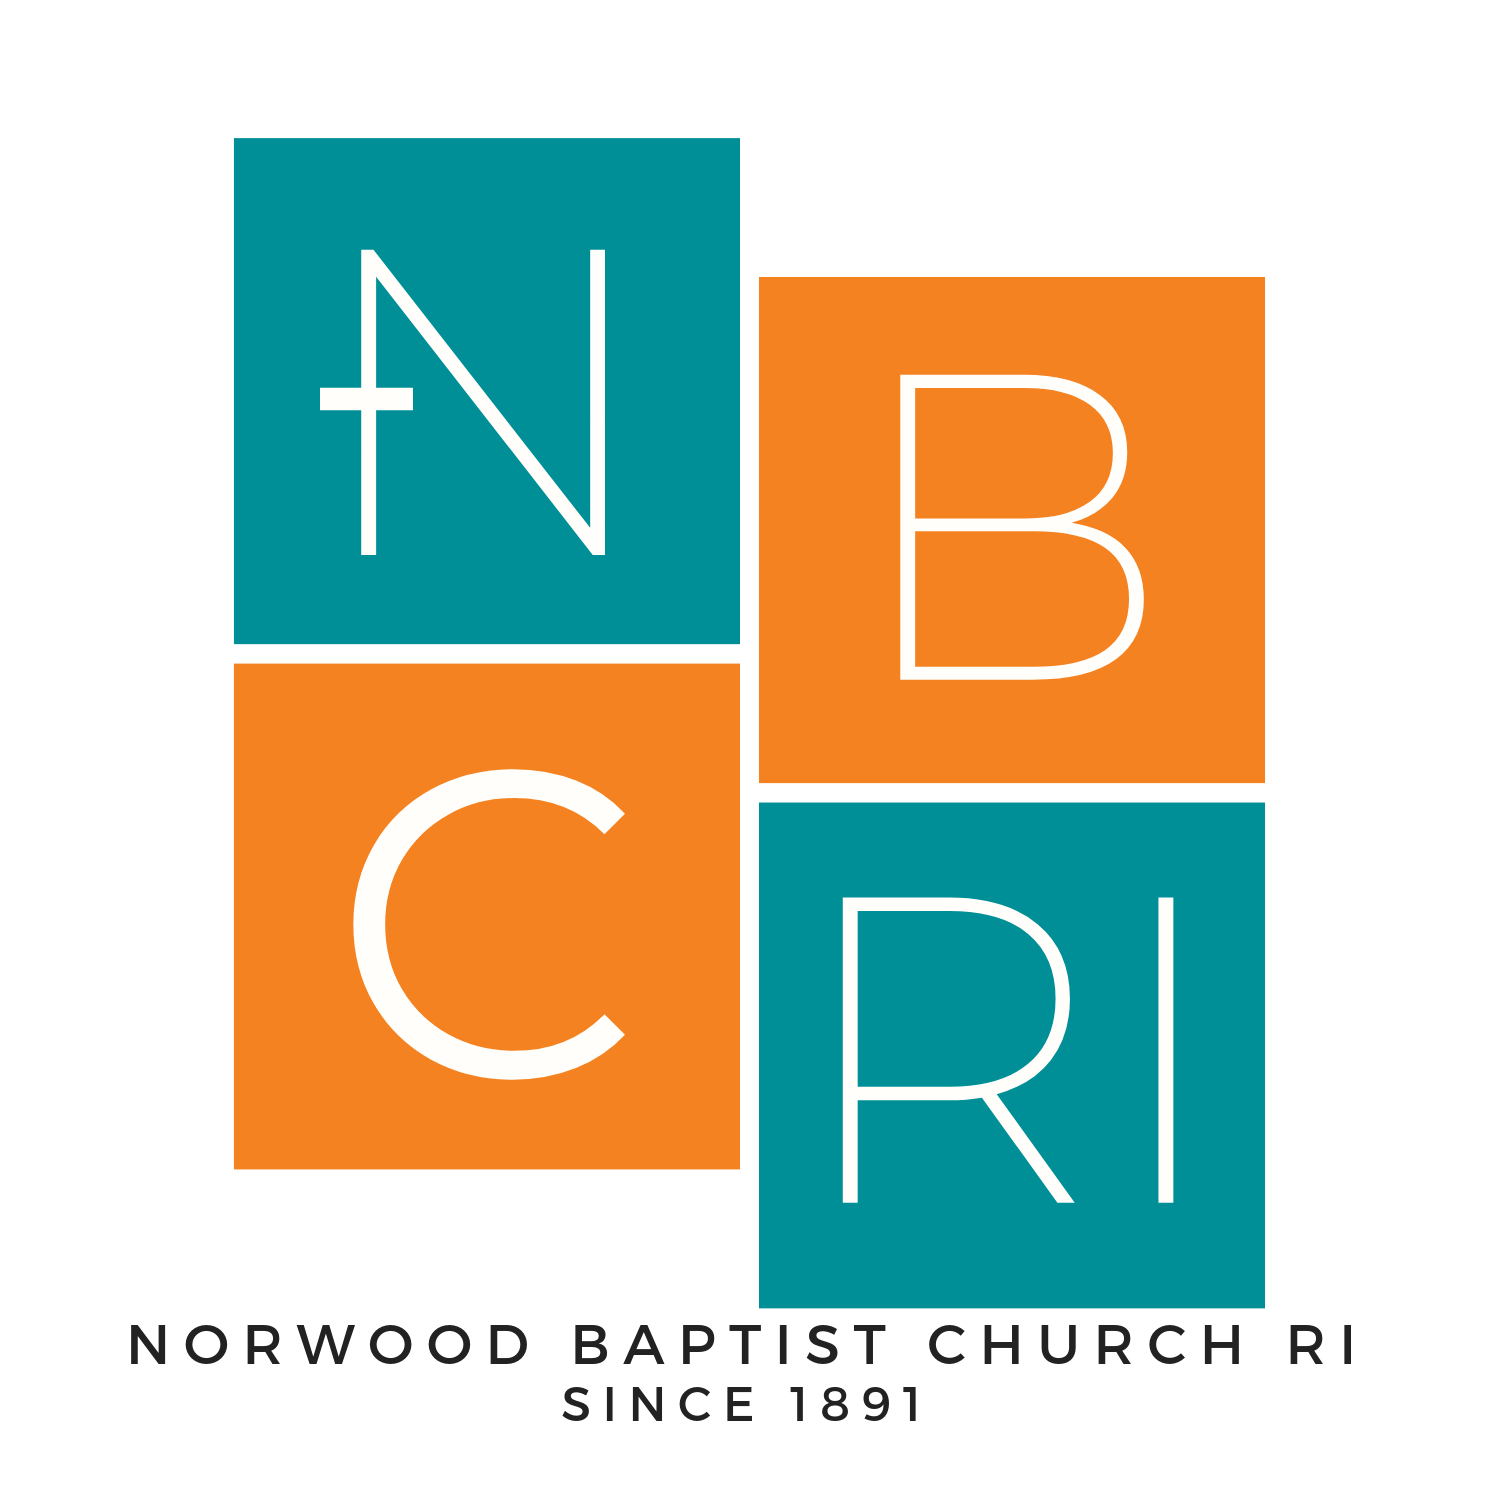 Norwood Baptist Church RI